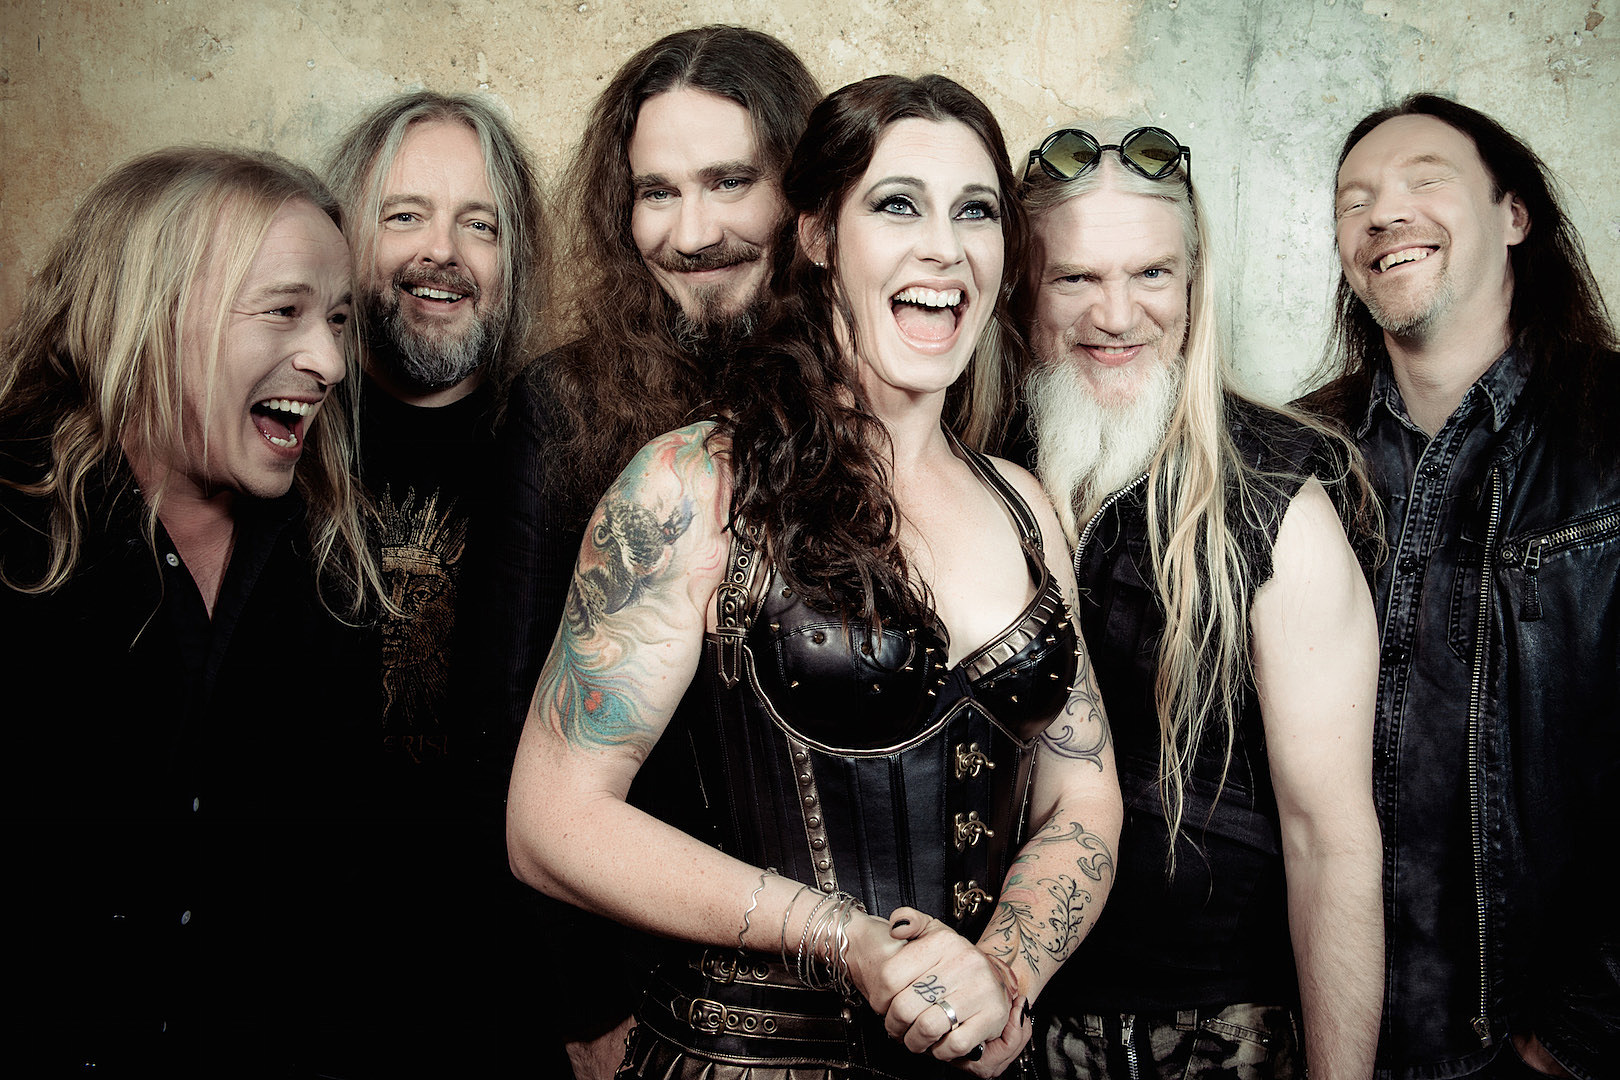 Scientists Name Newly Discovered Crab Species After Nightwish